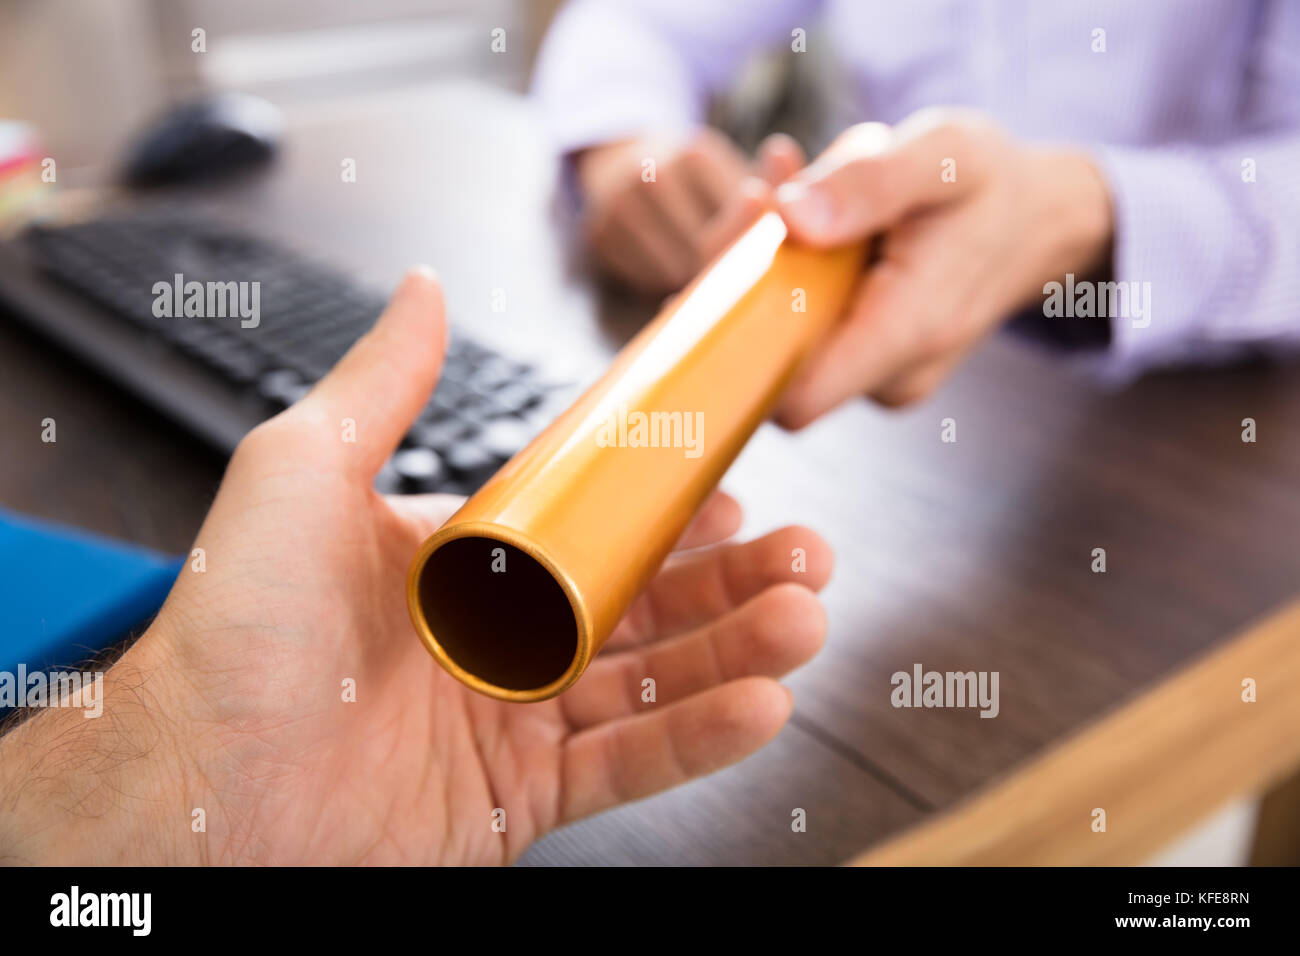 Close-up Of A Person's Hand Passing Golden Relay Baton To Businessman - Stock Image